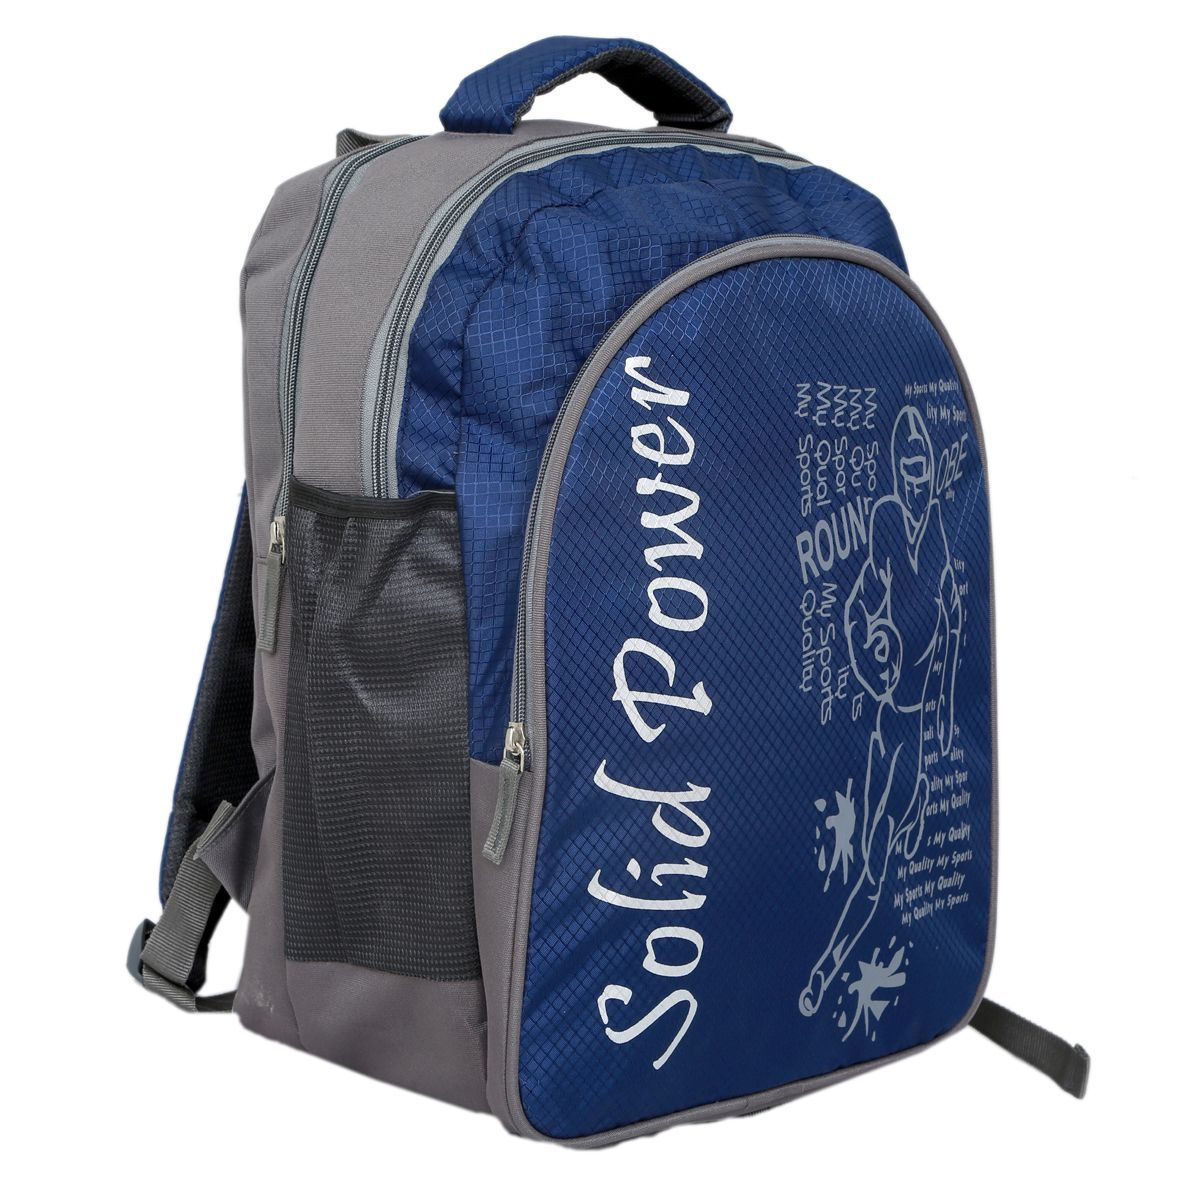 Kuber Industries 30 Ltrs School Bag, Backapack  (Blue)-KI19139